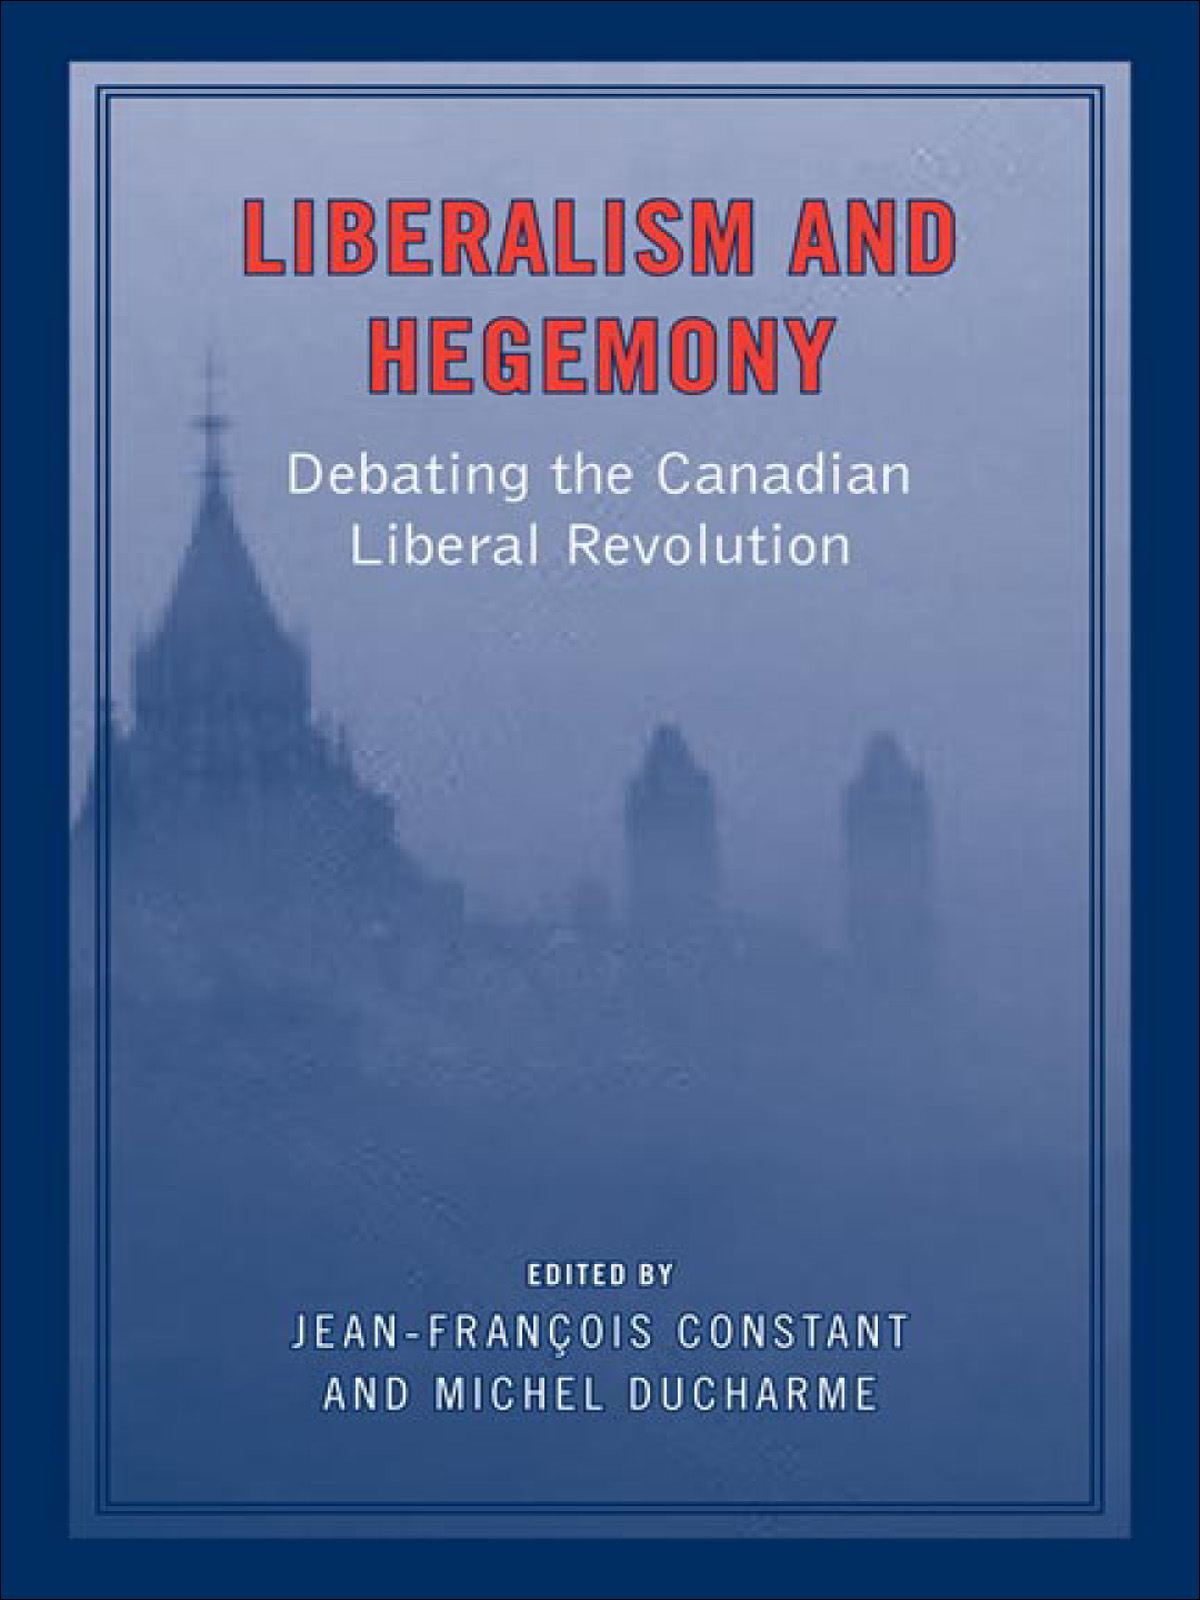 Liberalism and Hegemony By: Jean-Francois Constant,Michel Ducharme